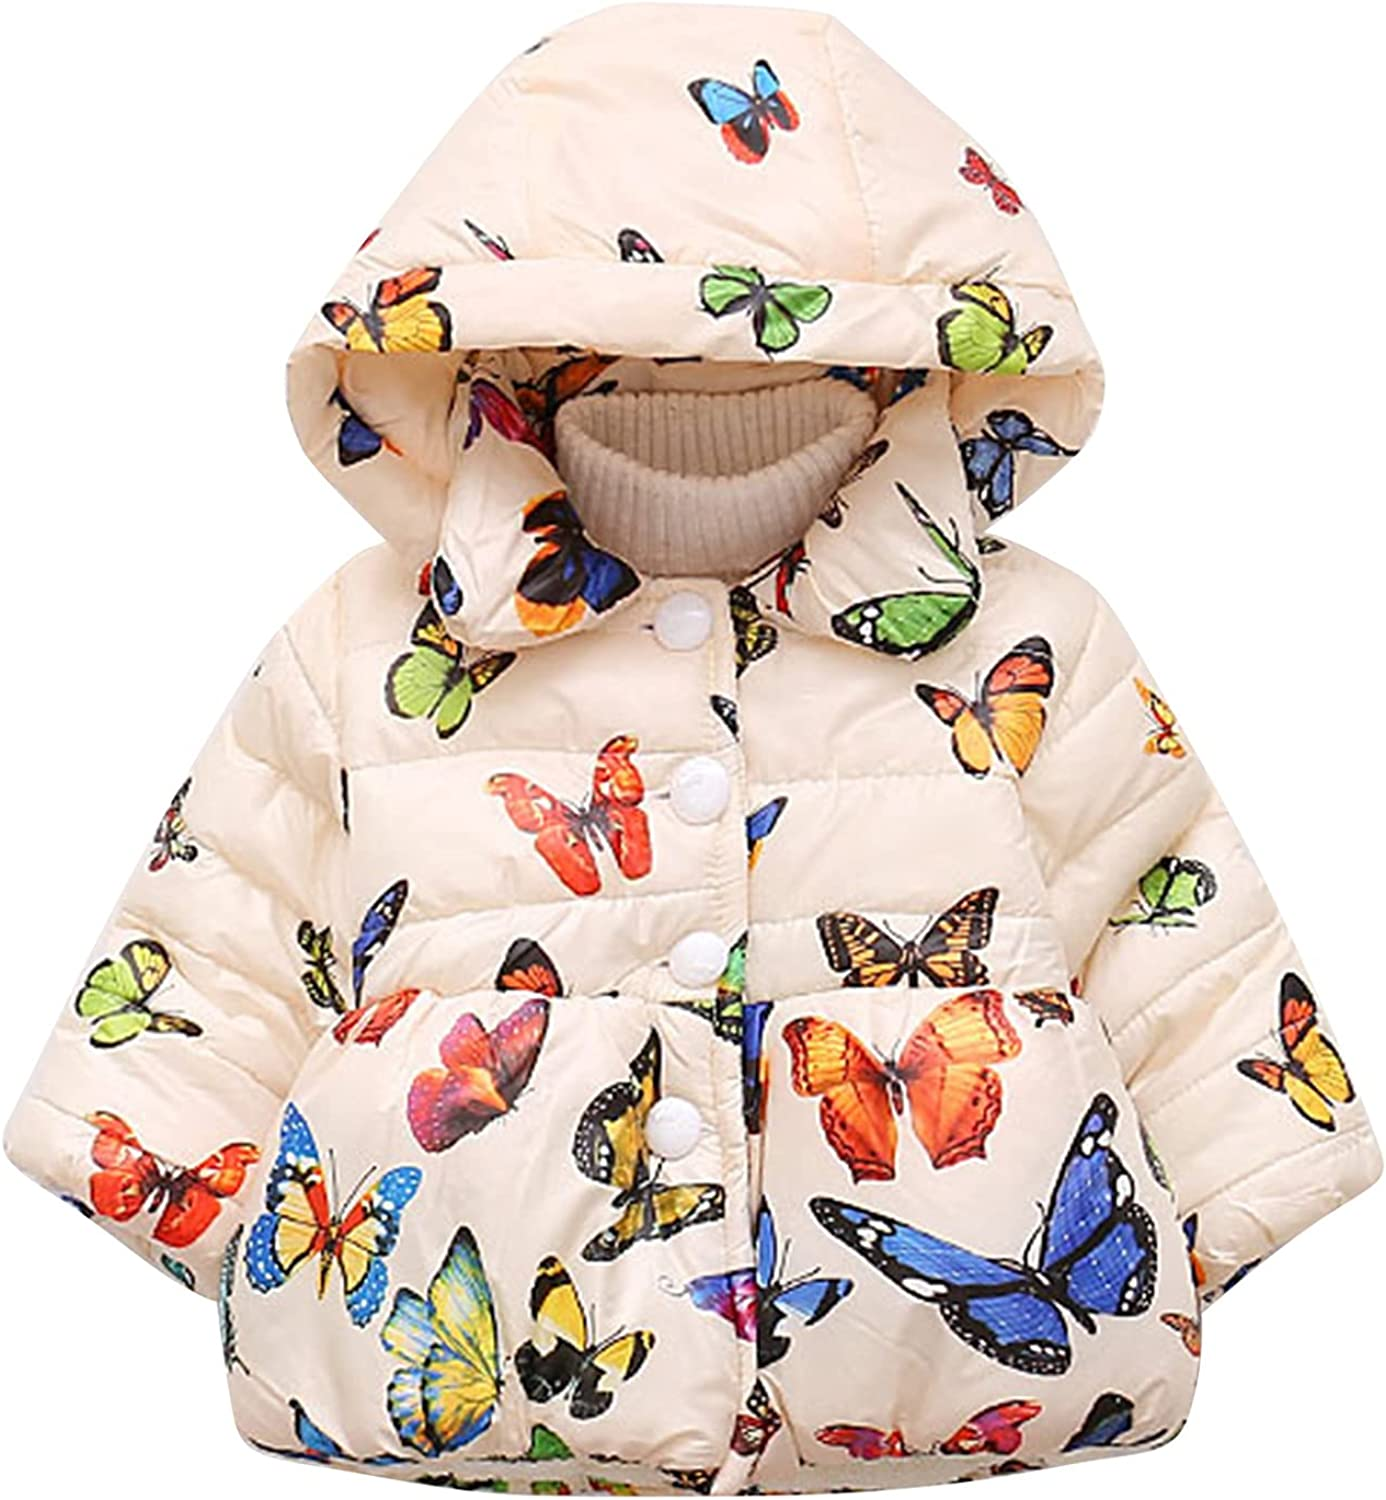 Aiihoo Toddler Baby Girls Outlet ☆ Free Shipping Puffer Winter Popularity Hooded Jacket Coat Warm